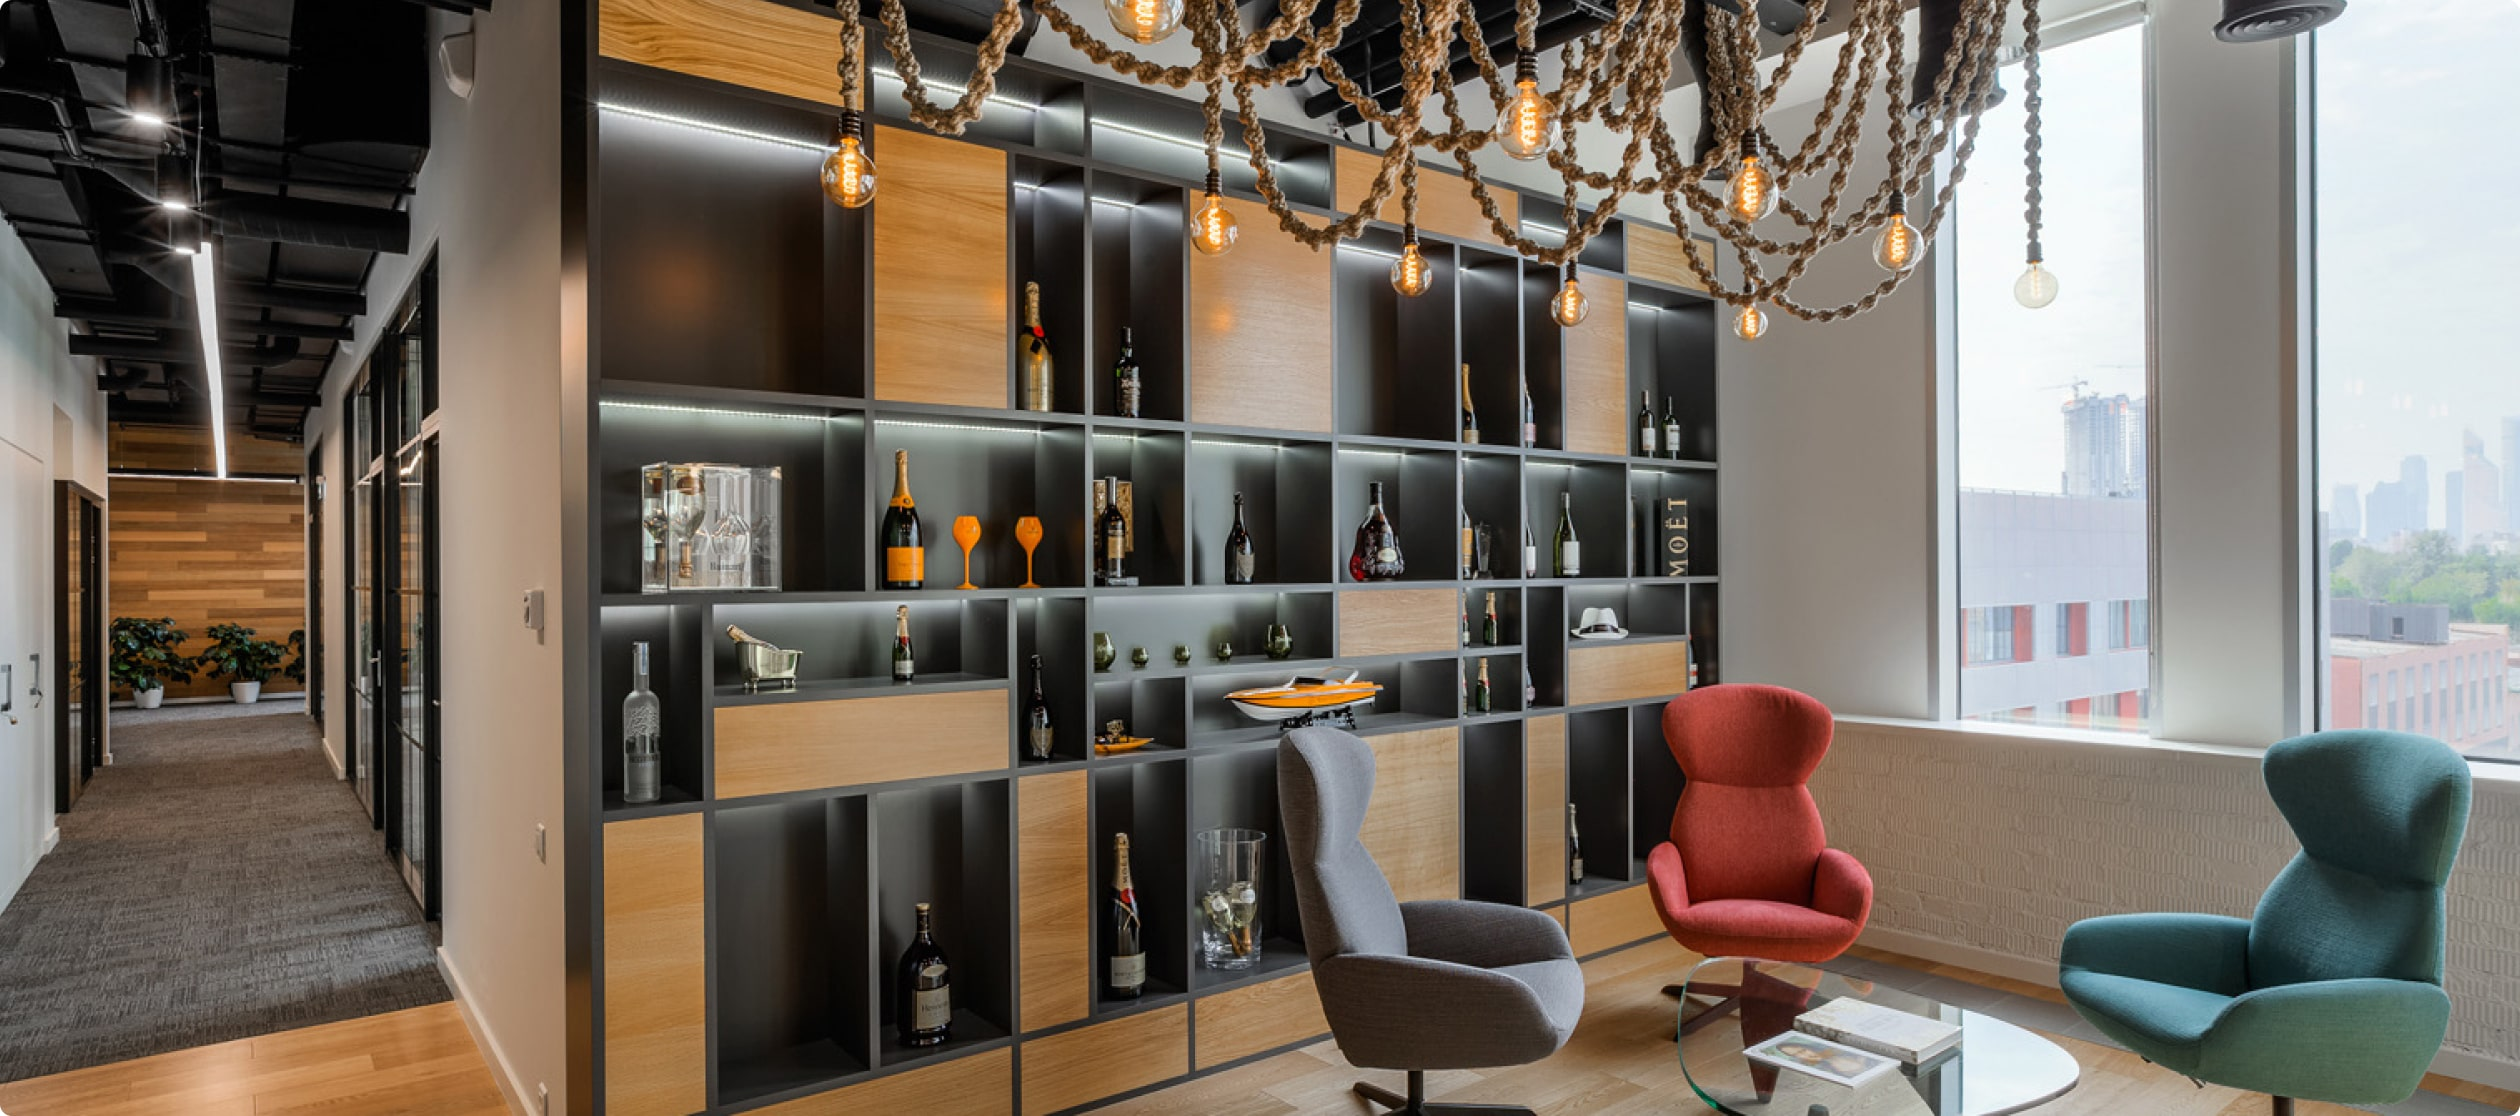 Moët Hennessy strengthened their leadership culture with Sharpist